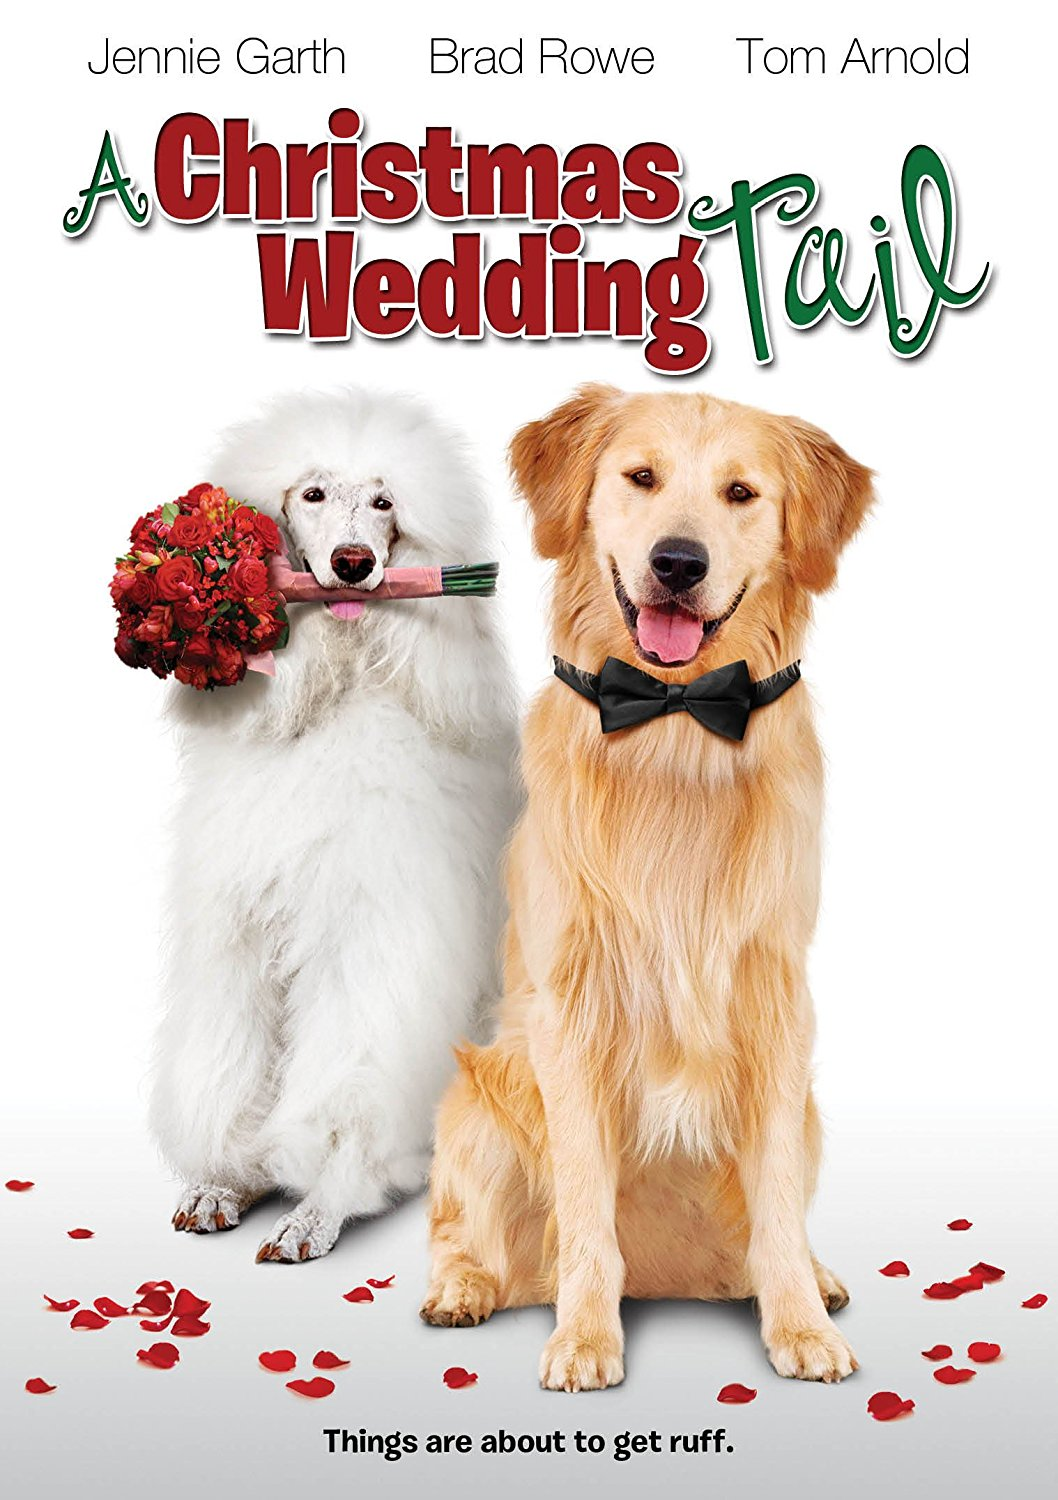 A Christmas Wedding Tail (2011) ταινιες online seires xrysoi greek subs